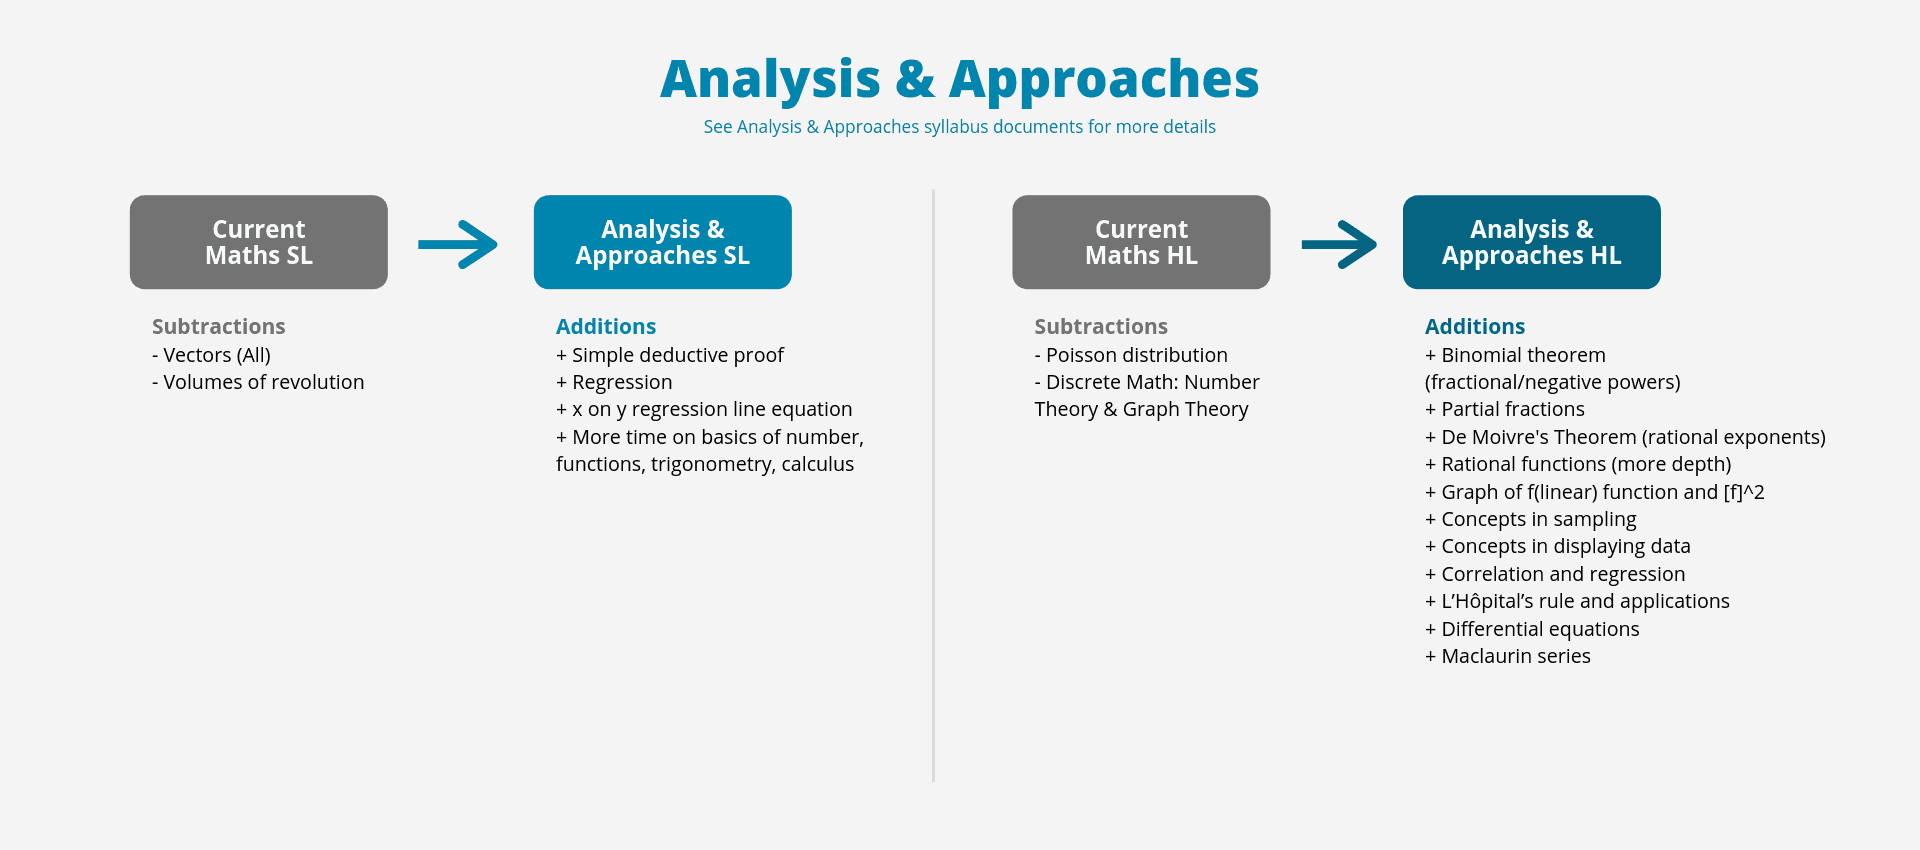 New IB Maths Curriculum - Comparison to Current Courses - Analysis and Approaches